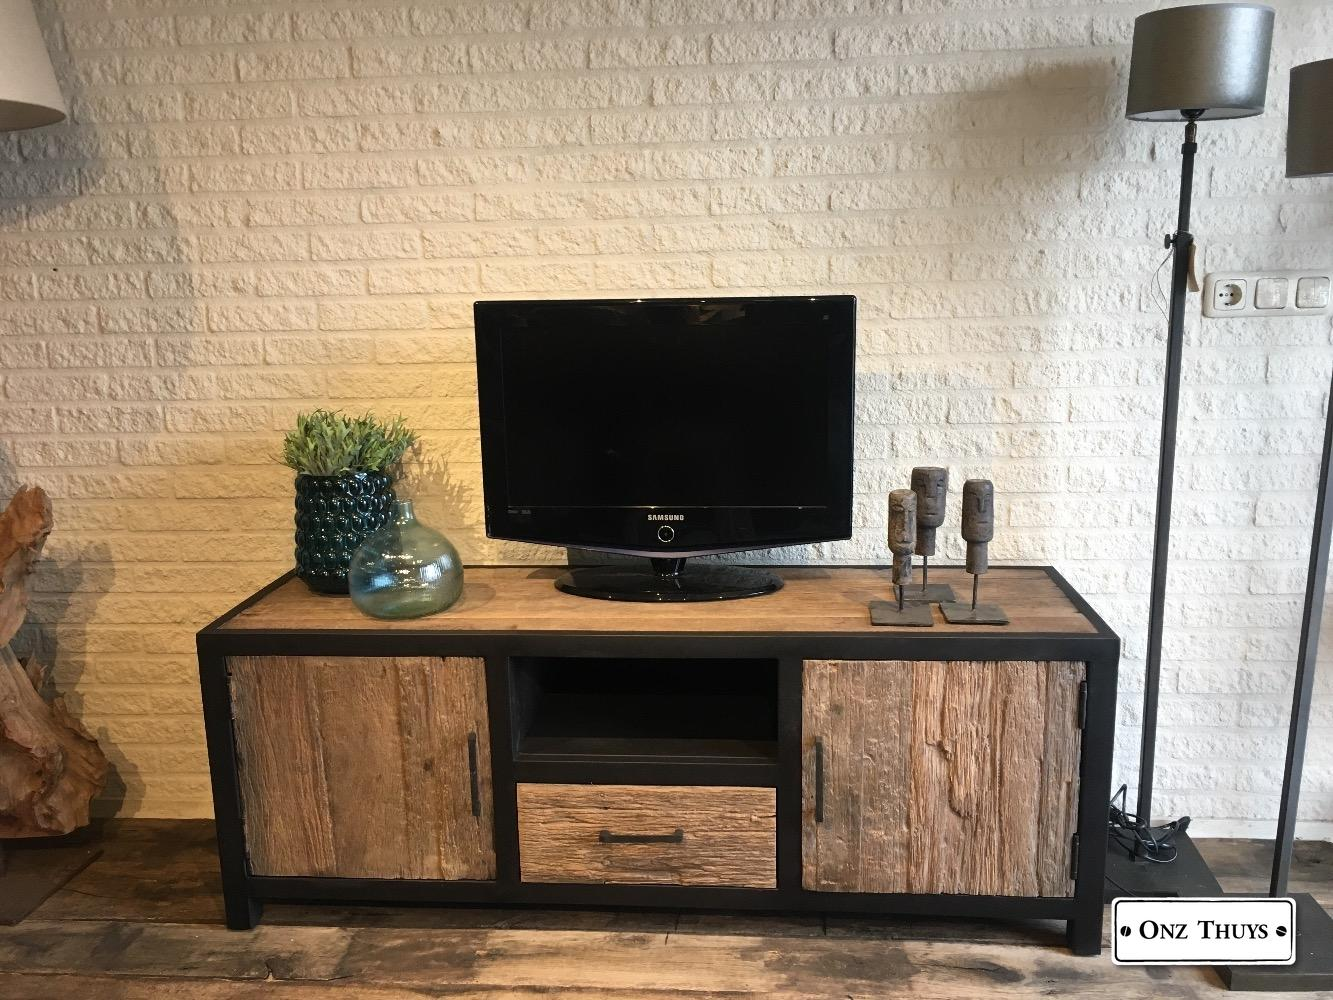 Tv Meubel Staal Hout.Tv Meubel Oud Hout Staal Kasten Onz Thuys